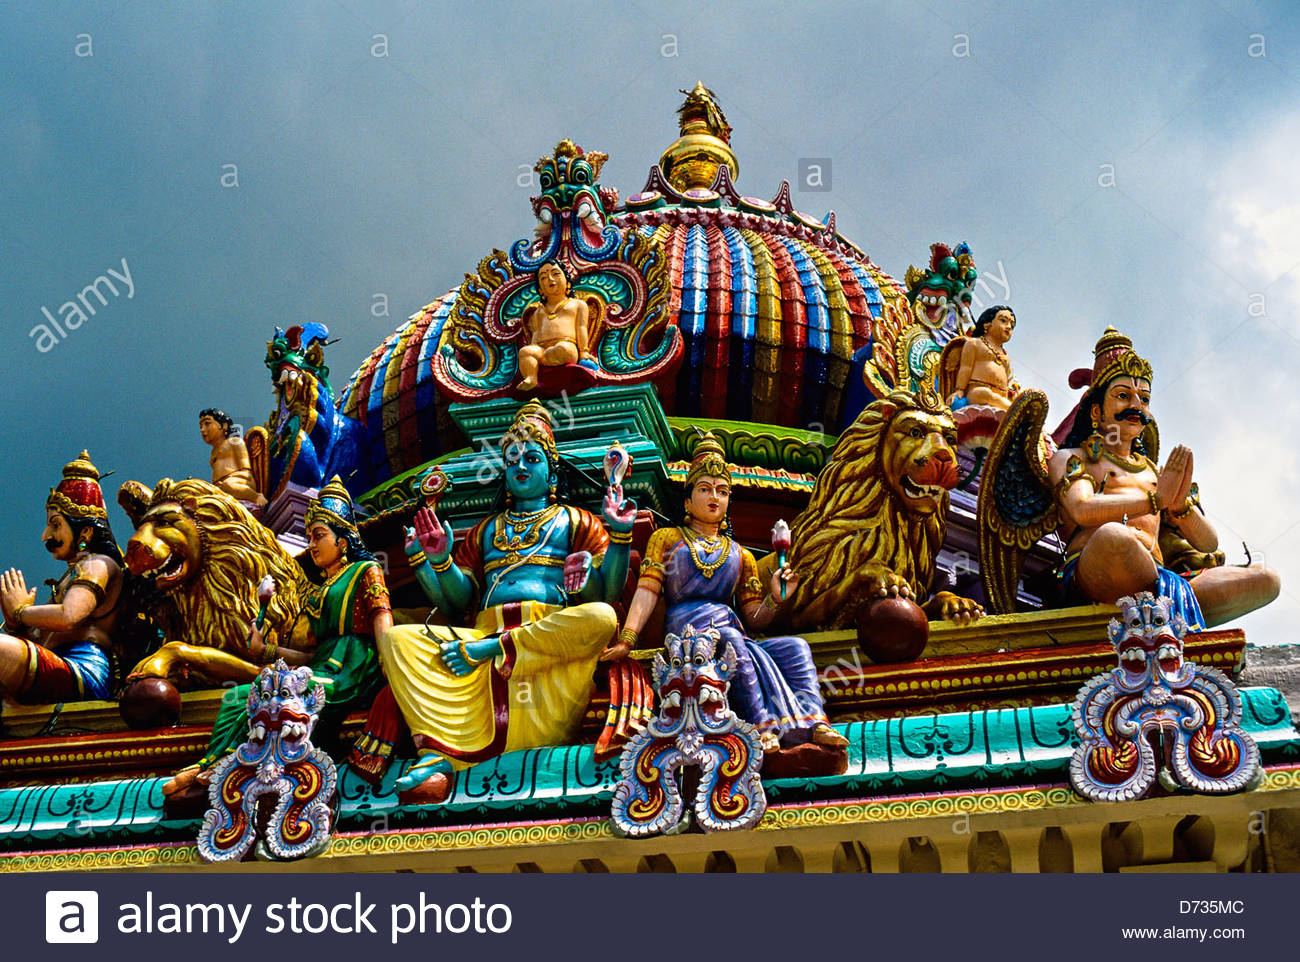 Hindu deities (sculptures) on the Gopuram, Sri Mariamman Temple (built in the South Indian Dravidian style), Singapore - Stock Image